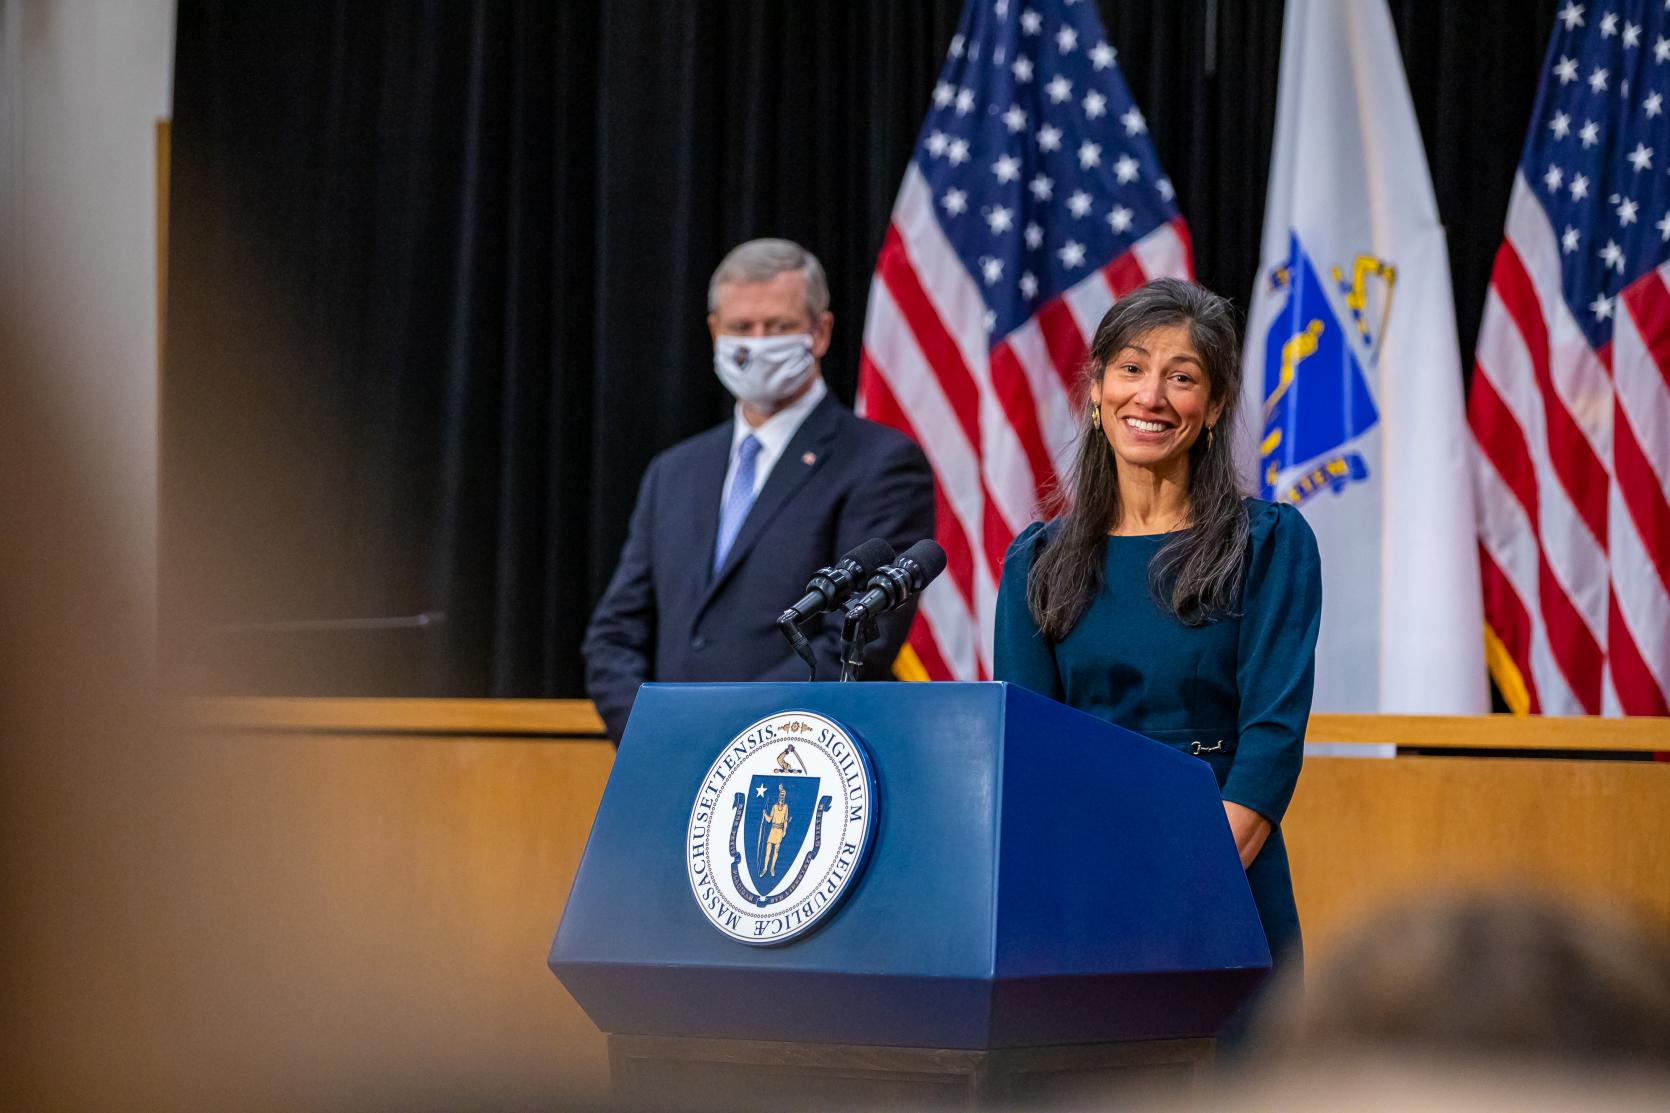 Governor Charlie Baker and Lt. Governor Karyn Polito Issue Statements on Confirmation of Justice Dalila Argaez Wendlandt as Associate Justice of the Supreme Judicial Court